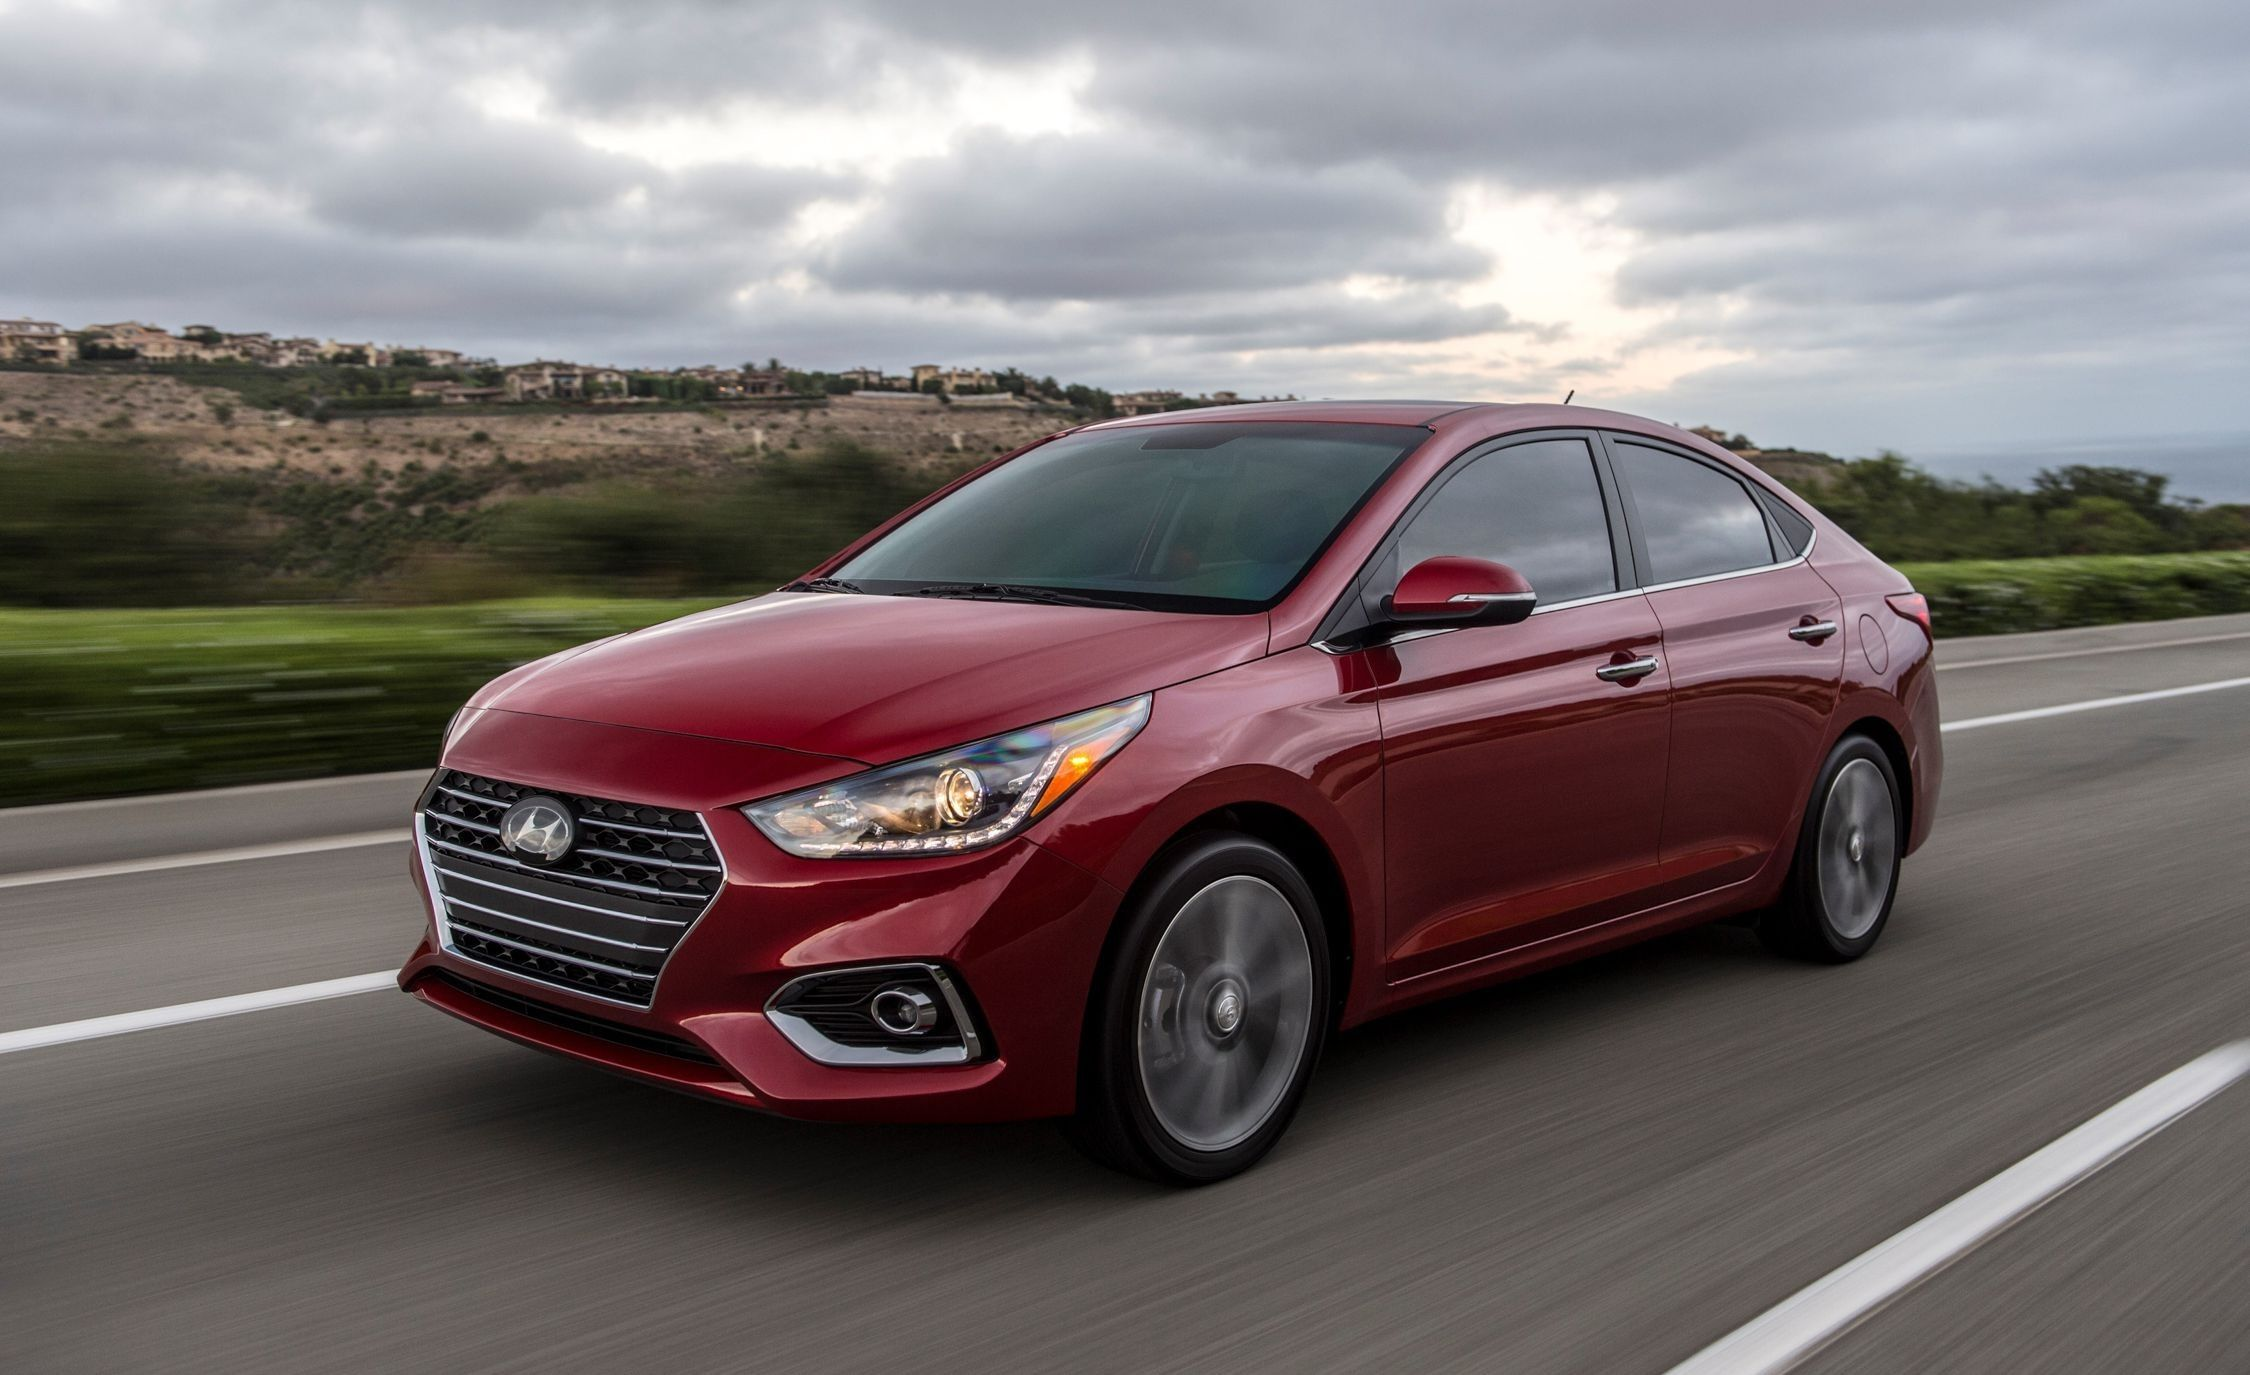 2018 Hyundai Accent First Drive Car Gallery Accent Car Hyundai Accent Hyundai Cars